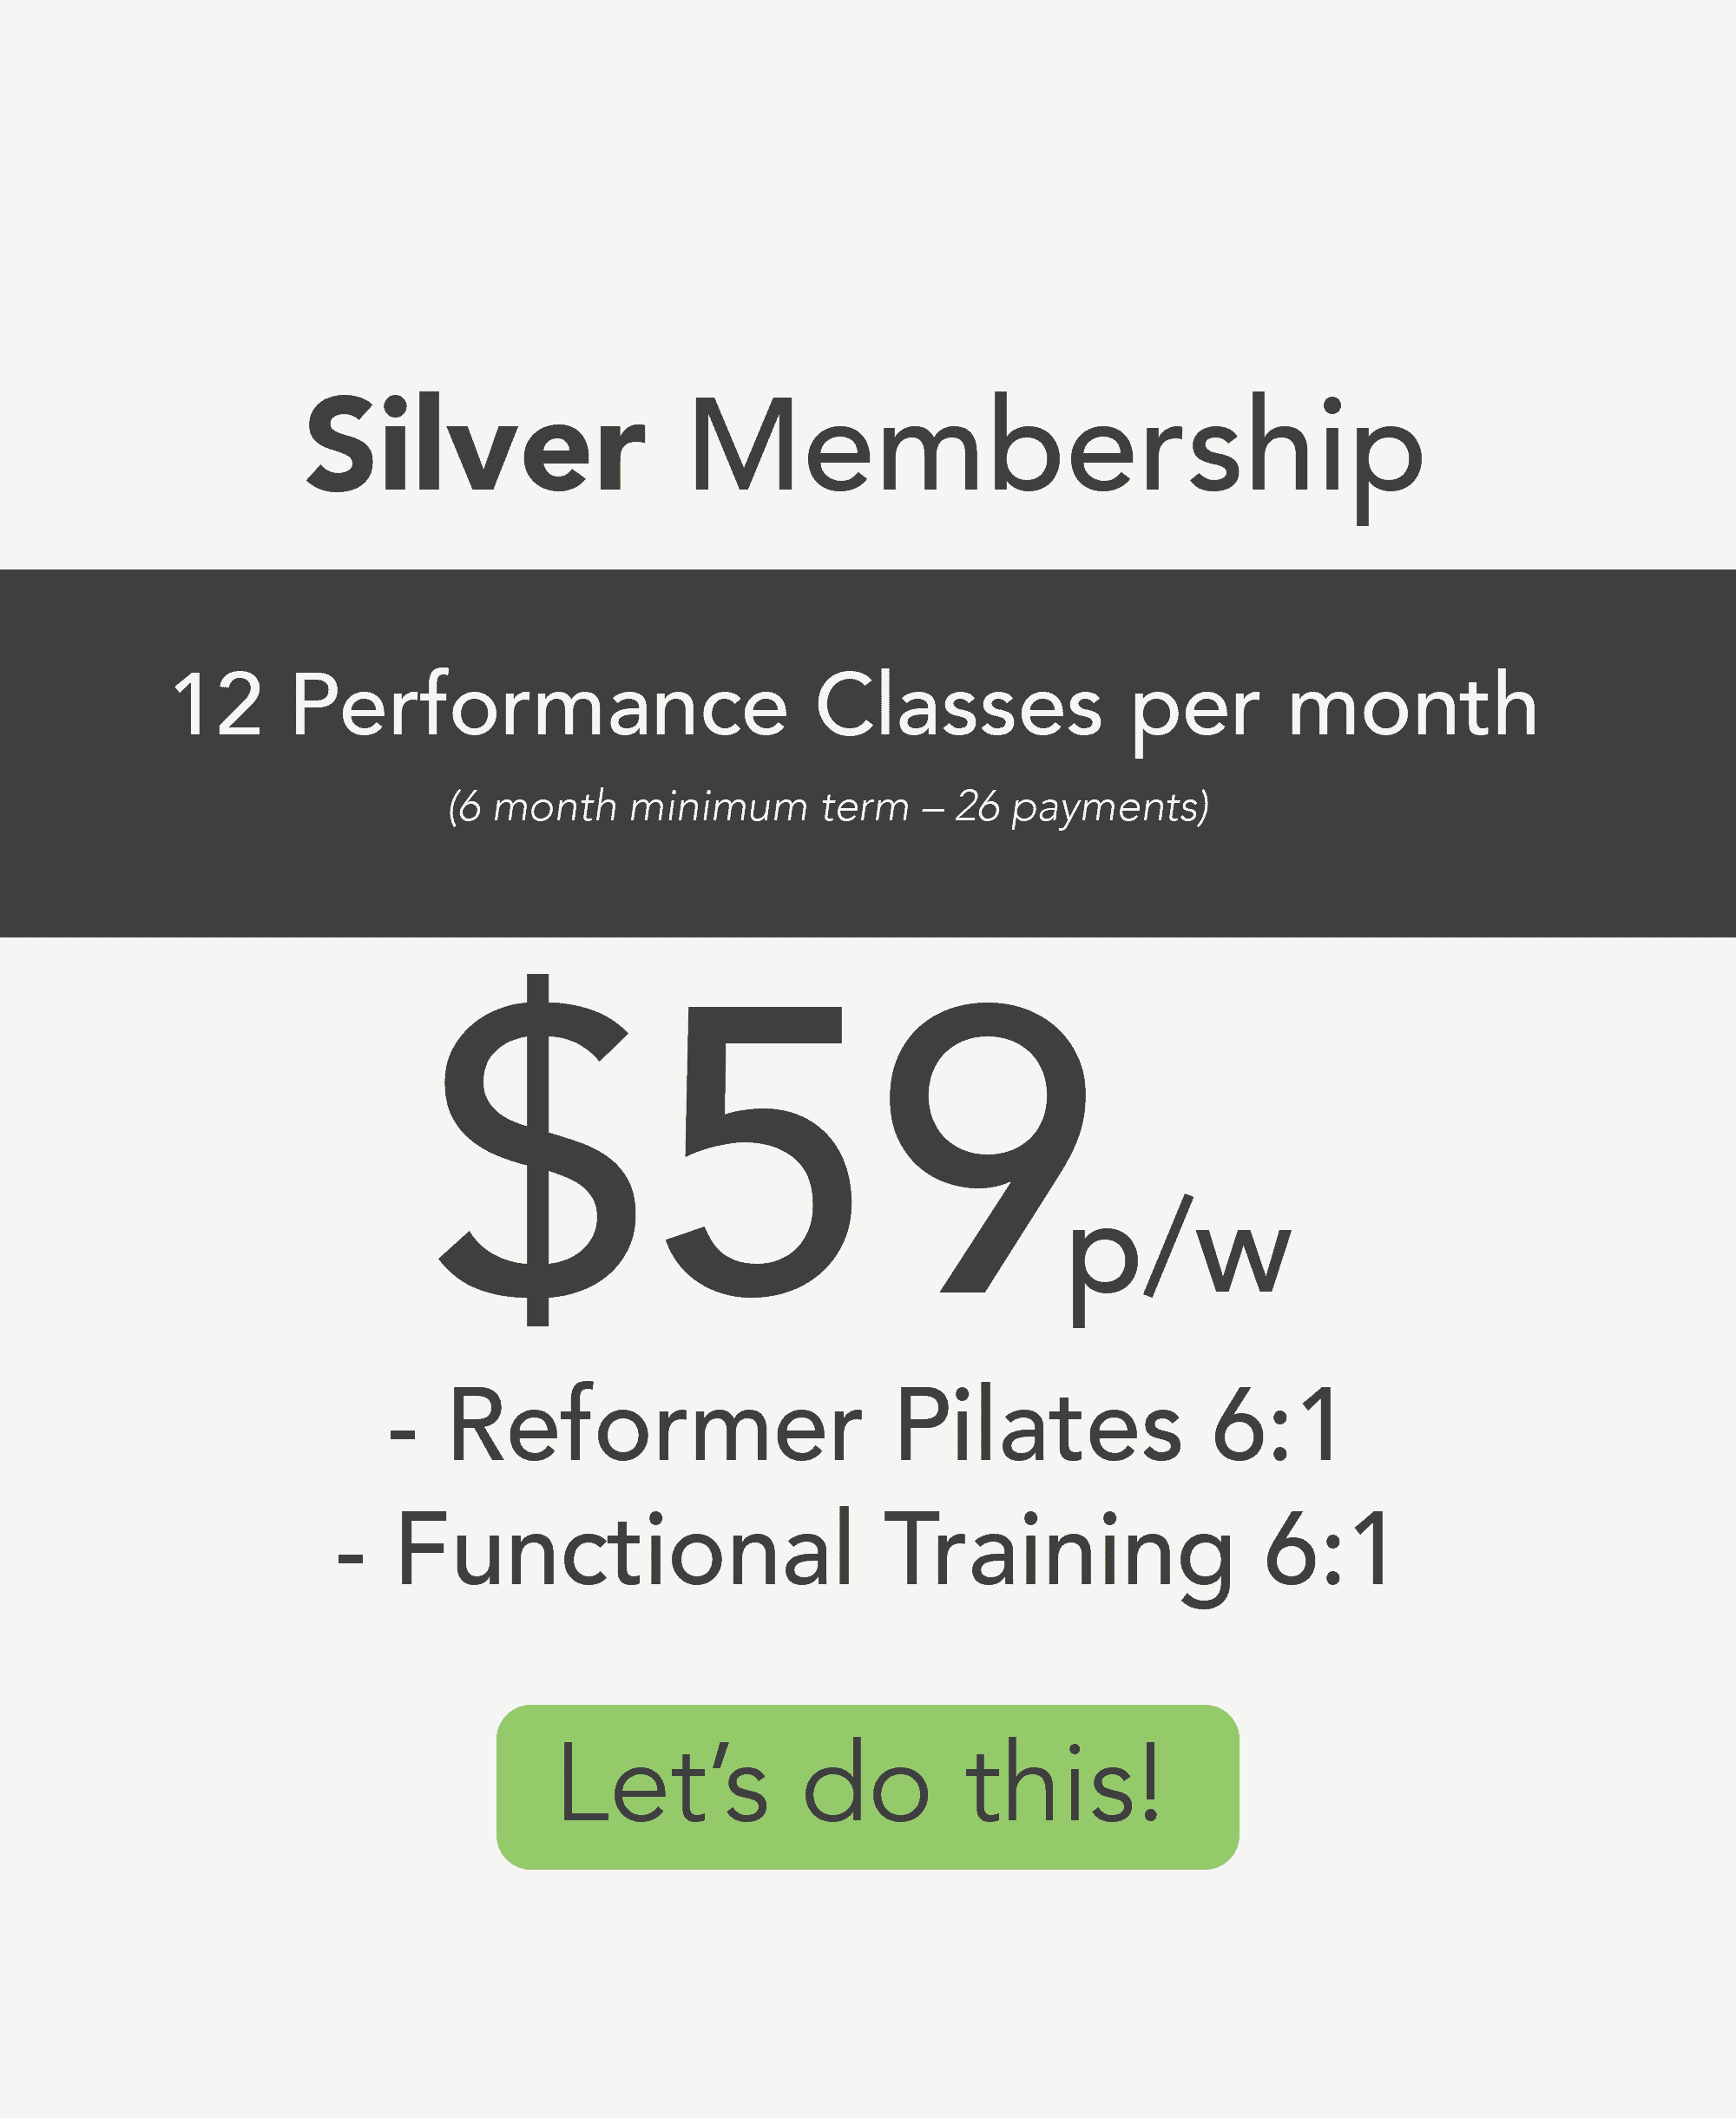 Forge Silver Membership